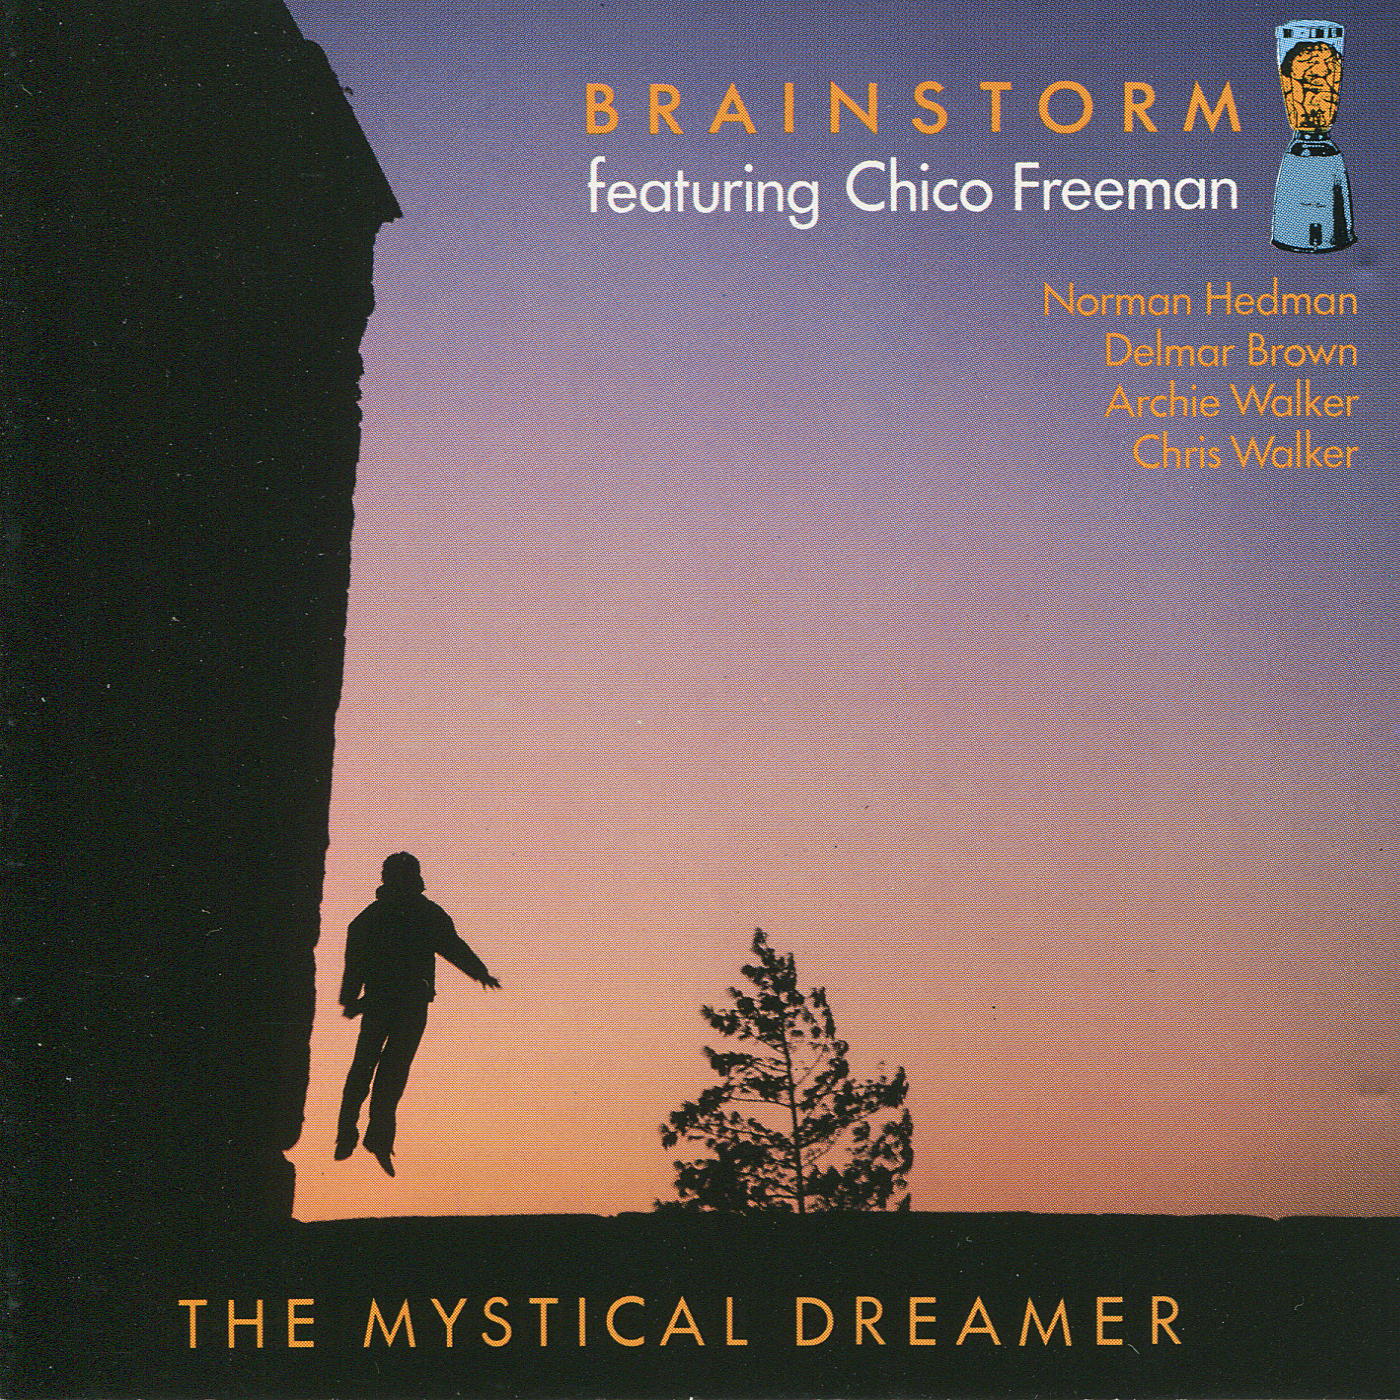 The Mystical Dreamer